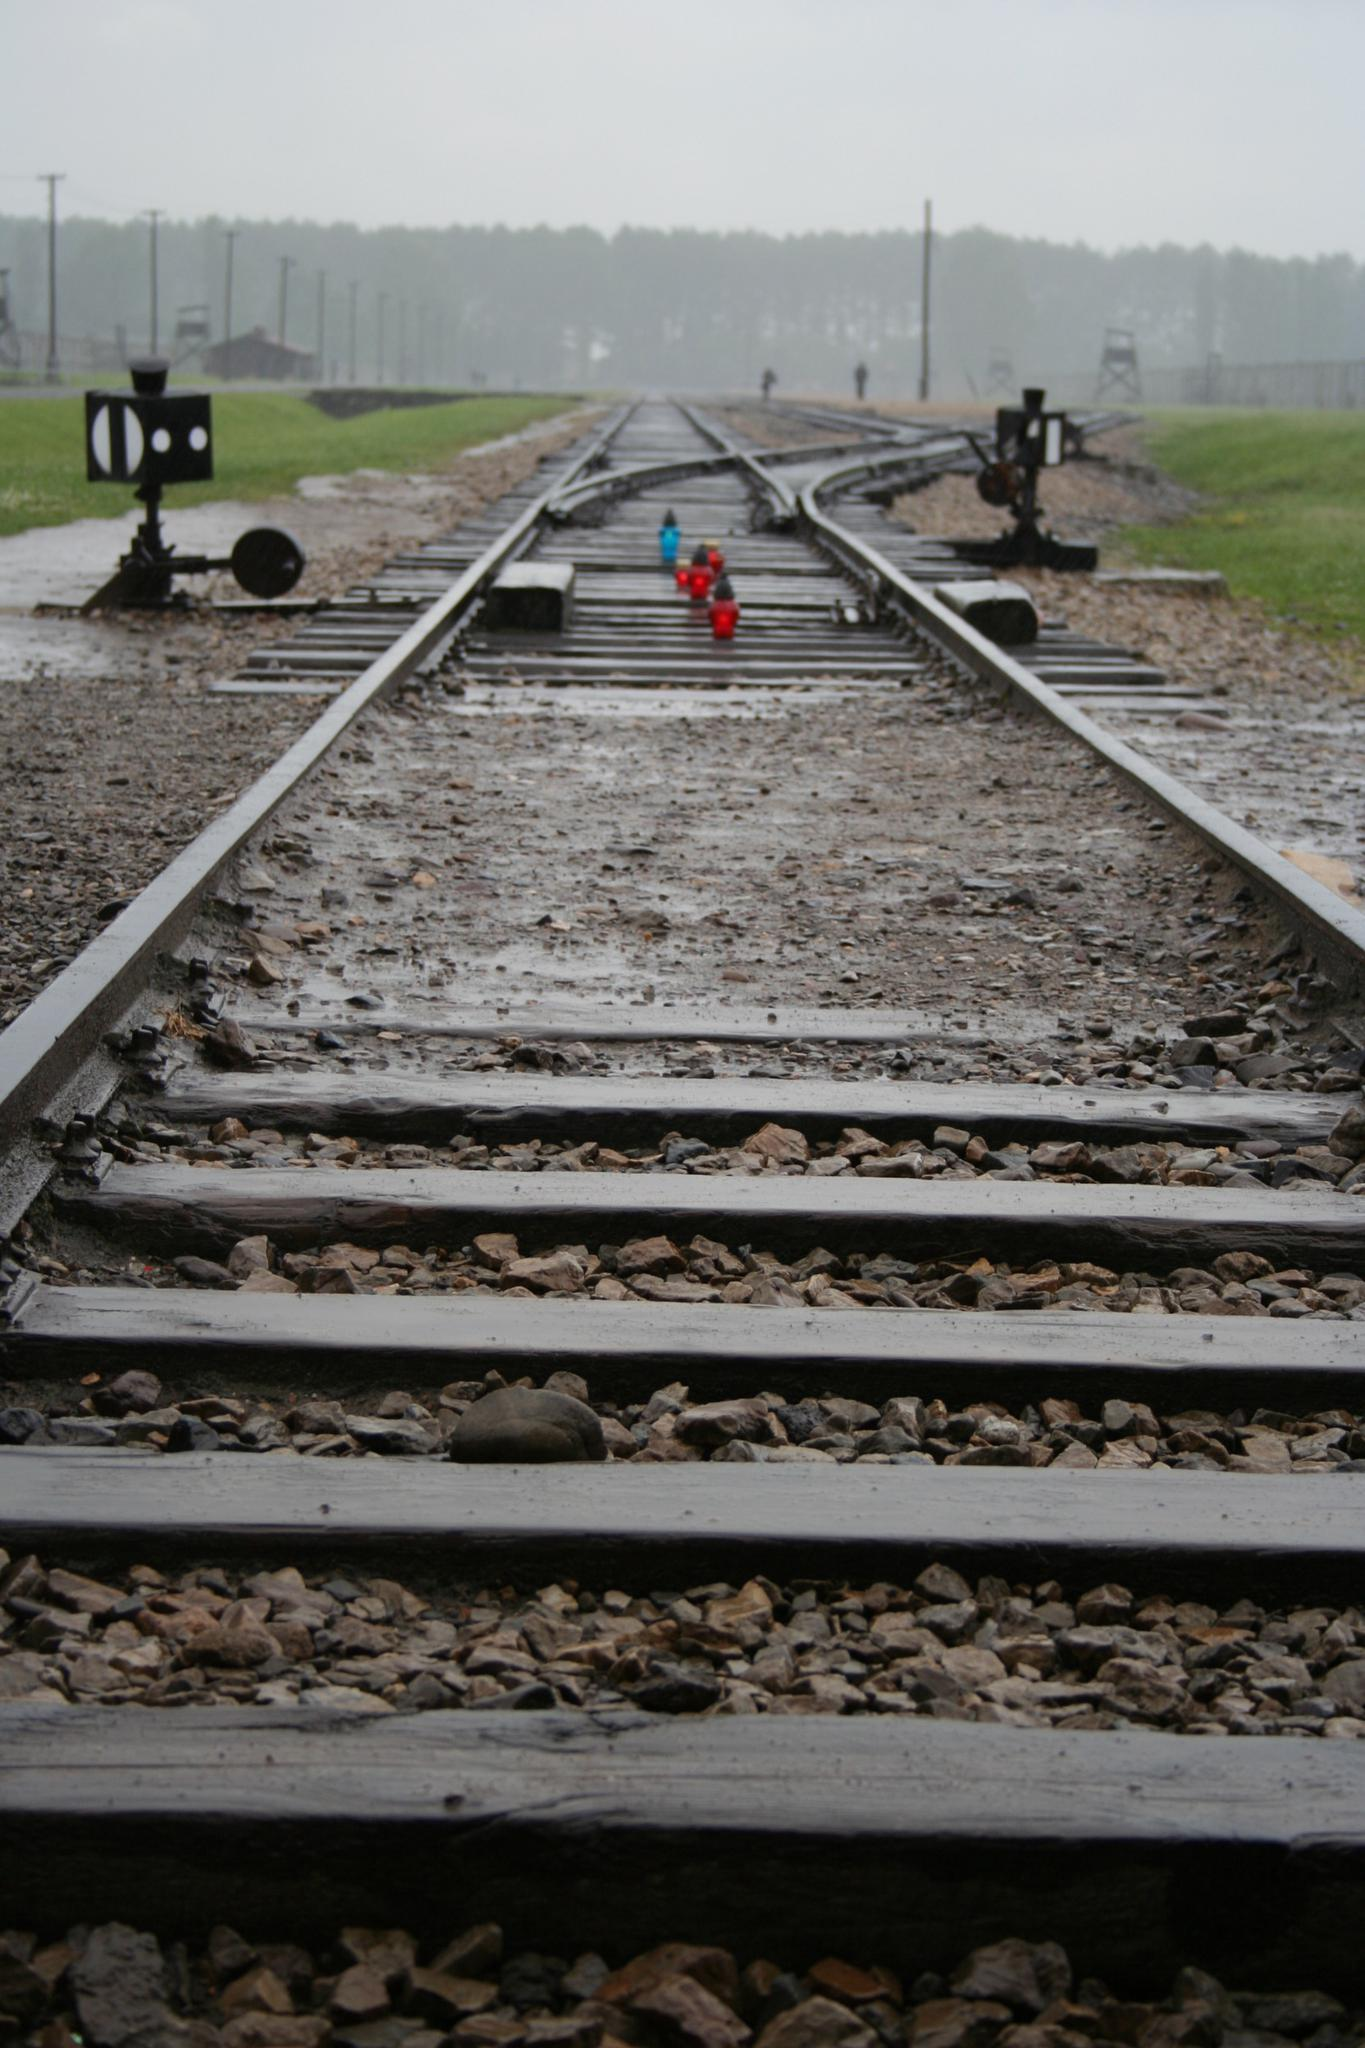 Train tracks that lead into the Auschwitz Nazi concentration camp, Poland.